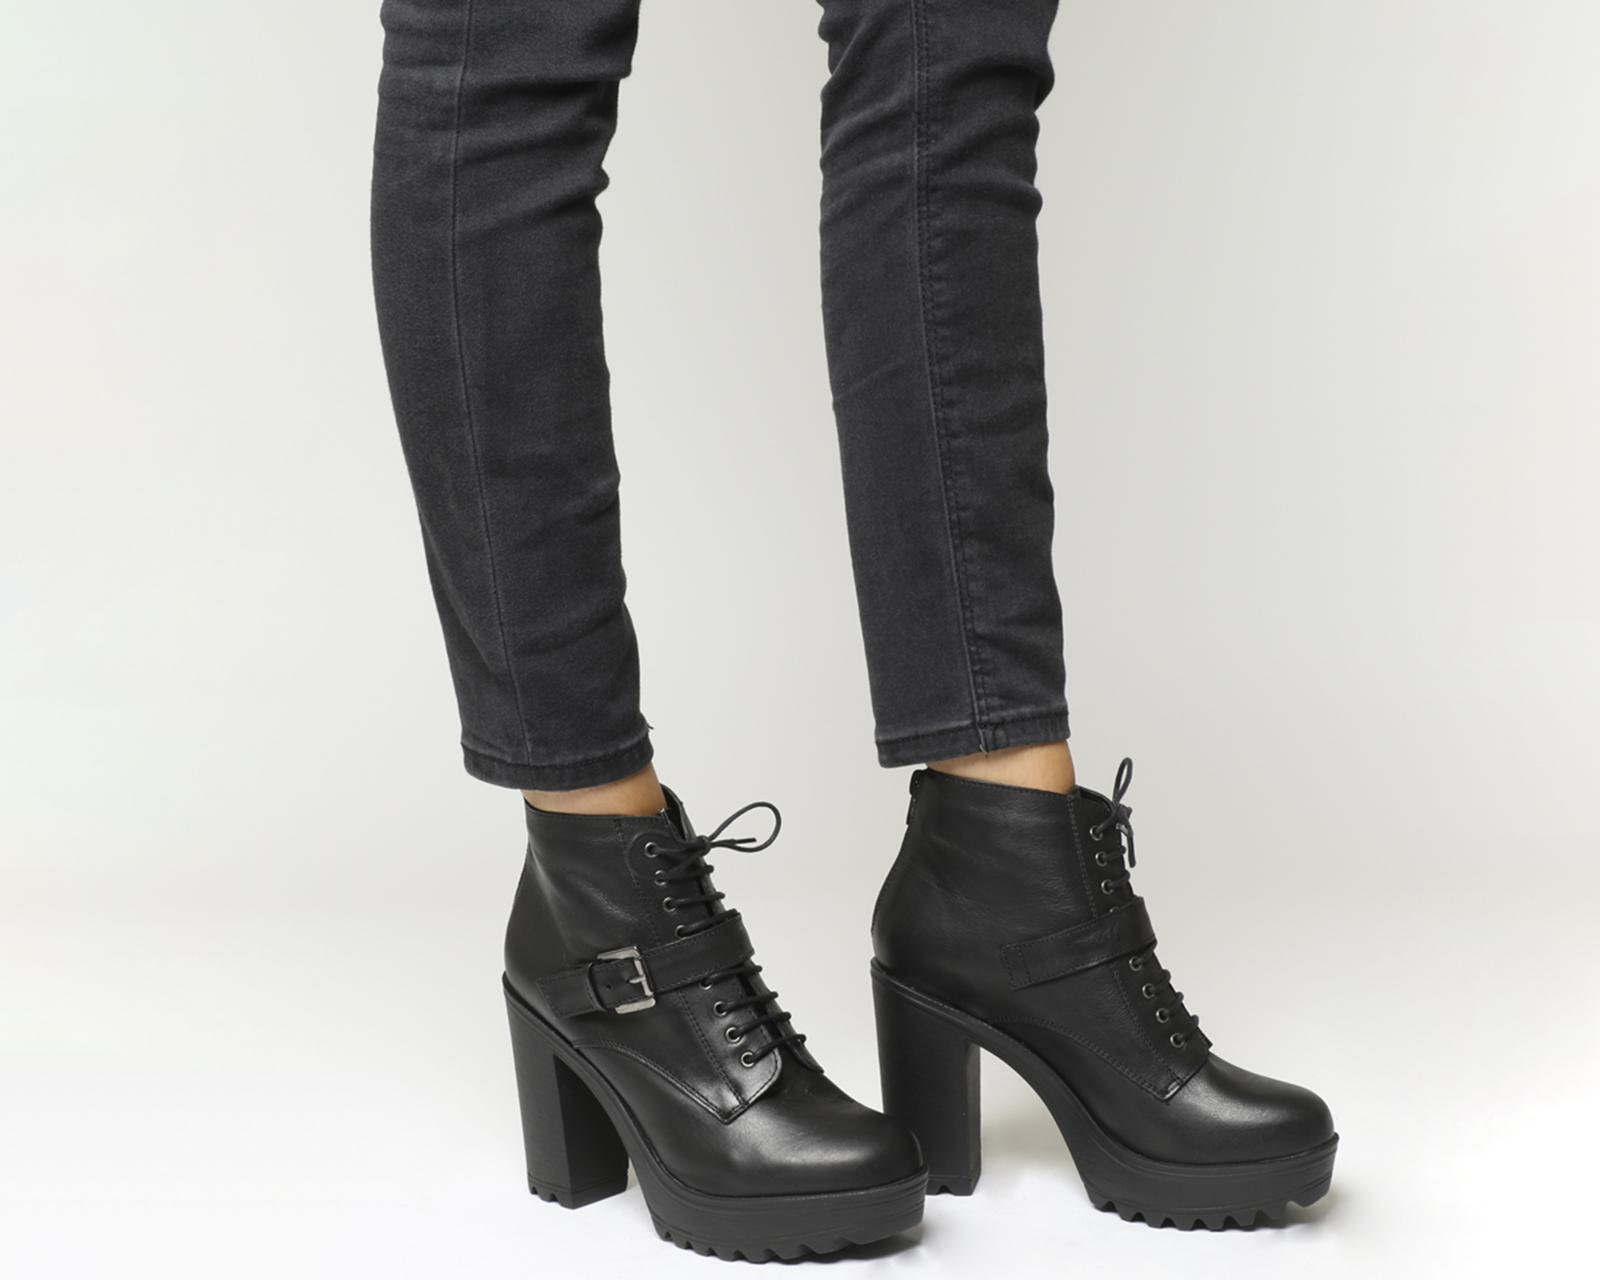 Office Leather Candid Chunky Heel Harness Boots in Black